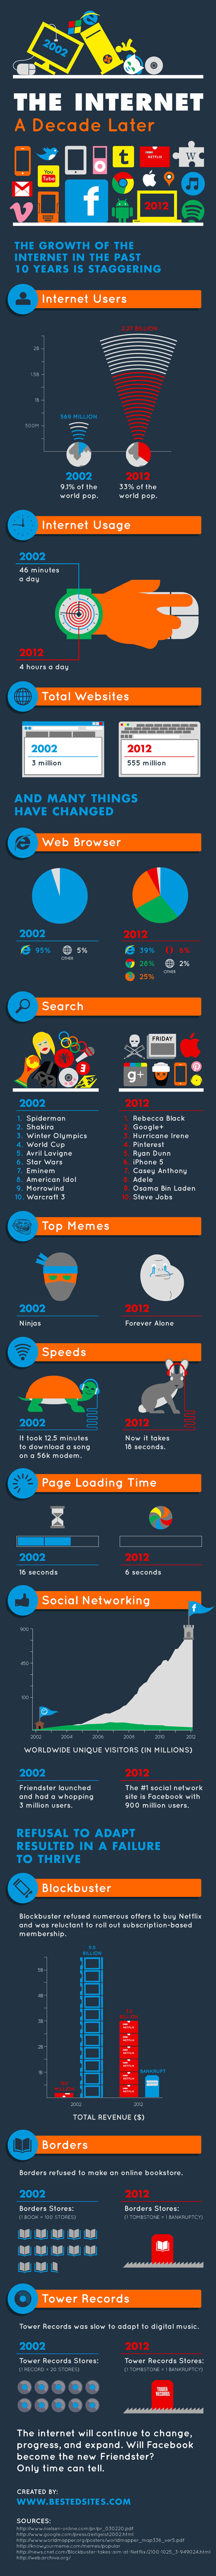 A decade of Internet